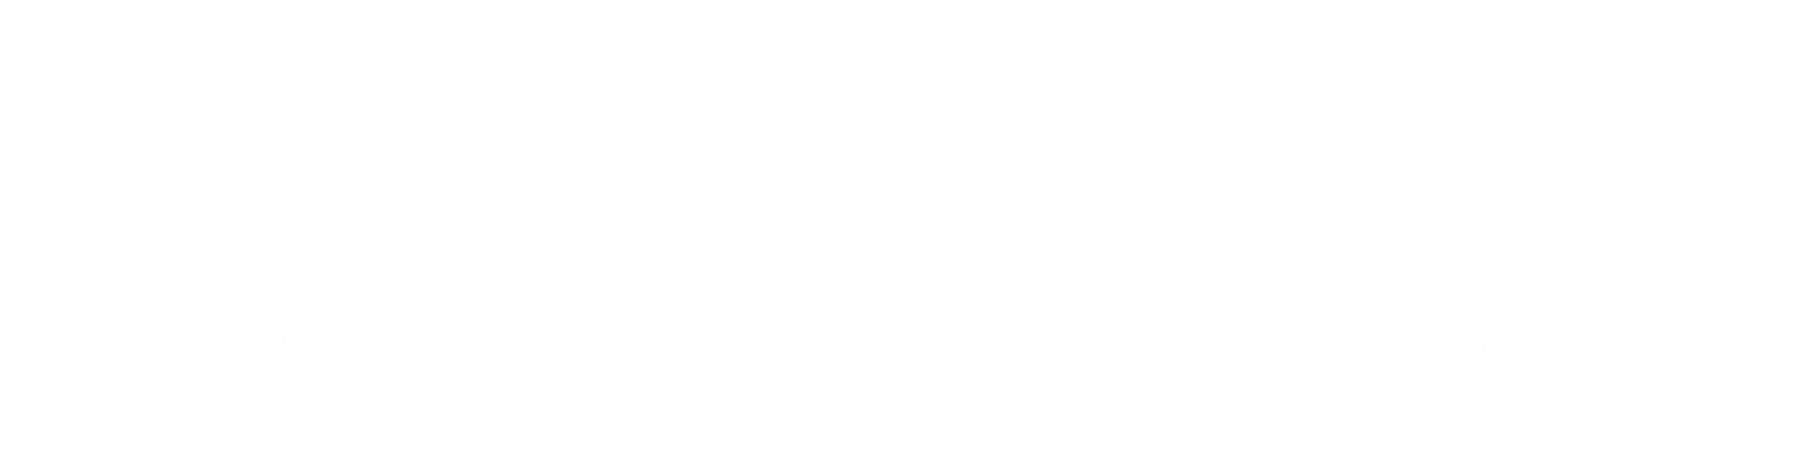 Hanover Law Review